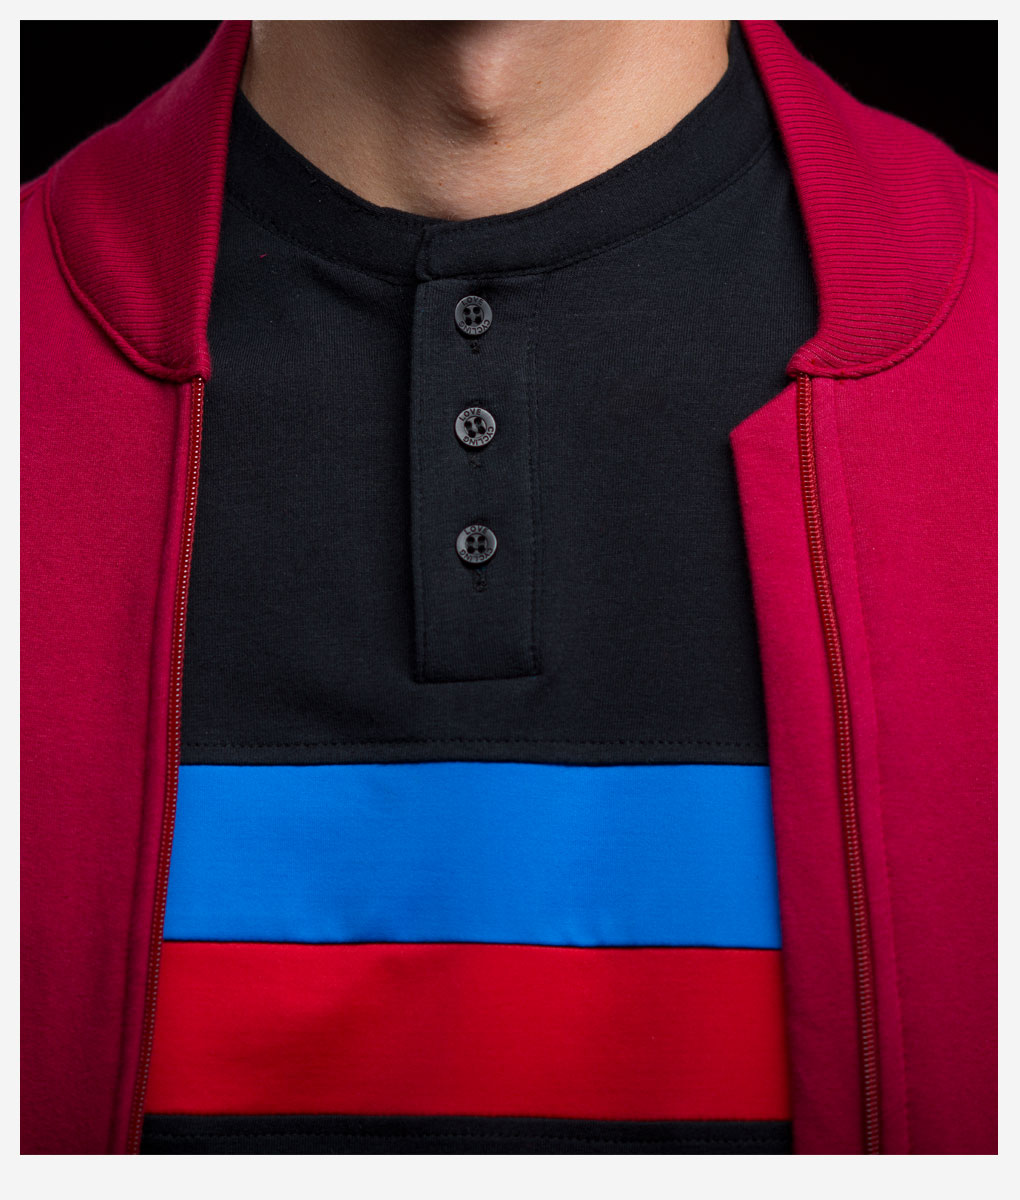 casual-cycling-clothing-jacket-garnet-canale-neck-front-neck-d02